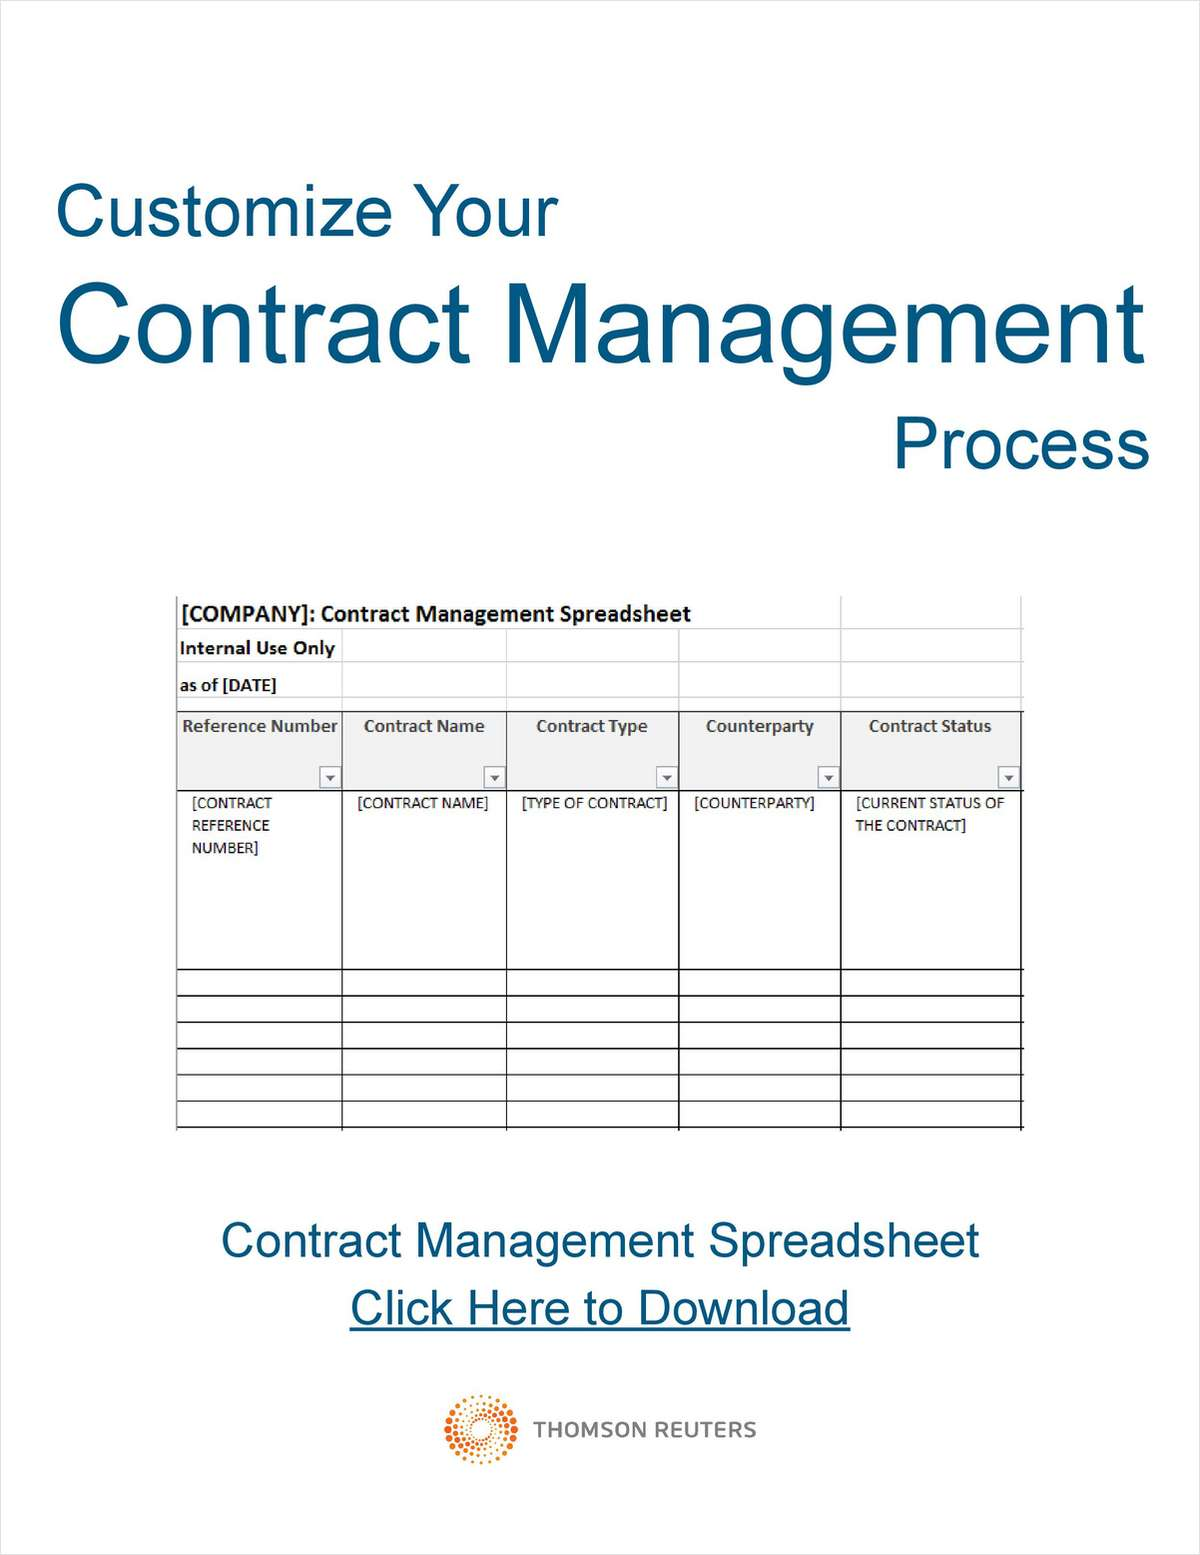 Customize Your Contract Management Process